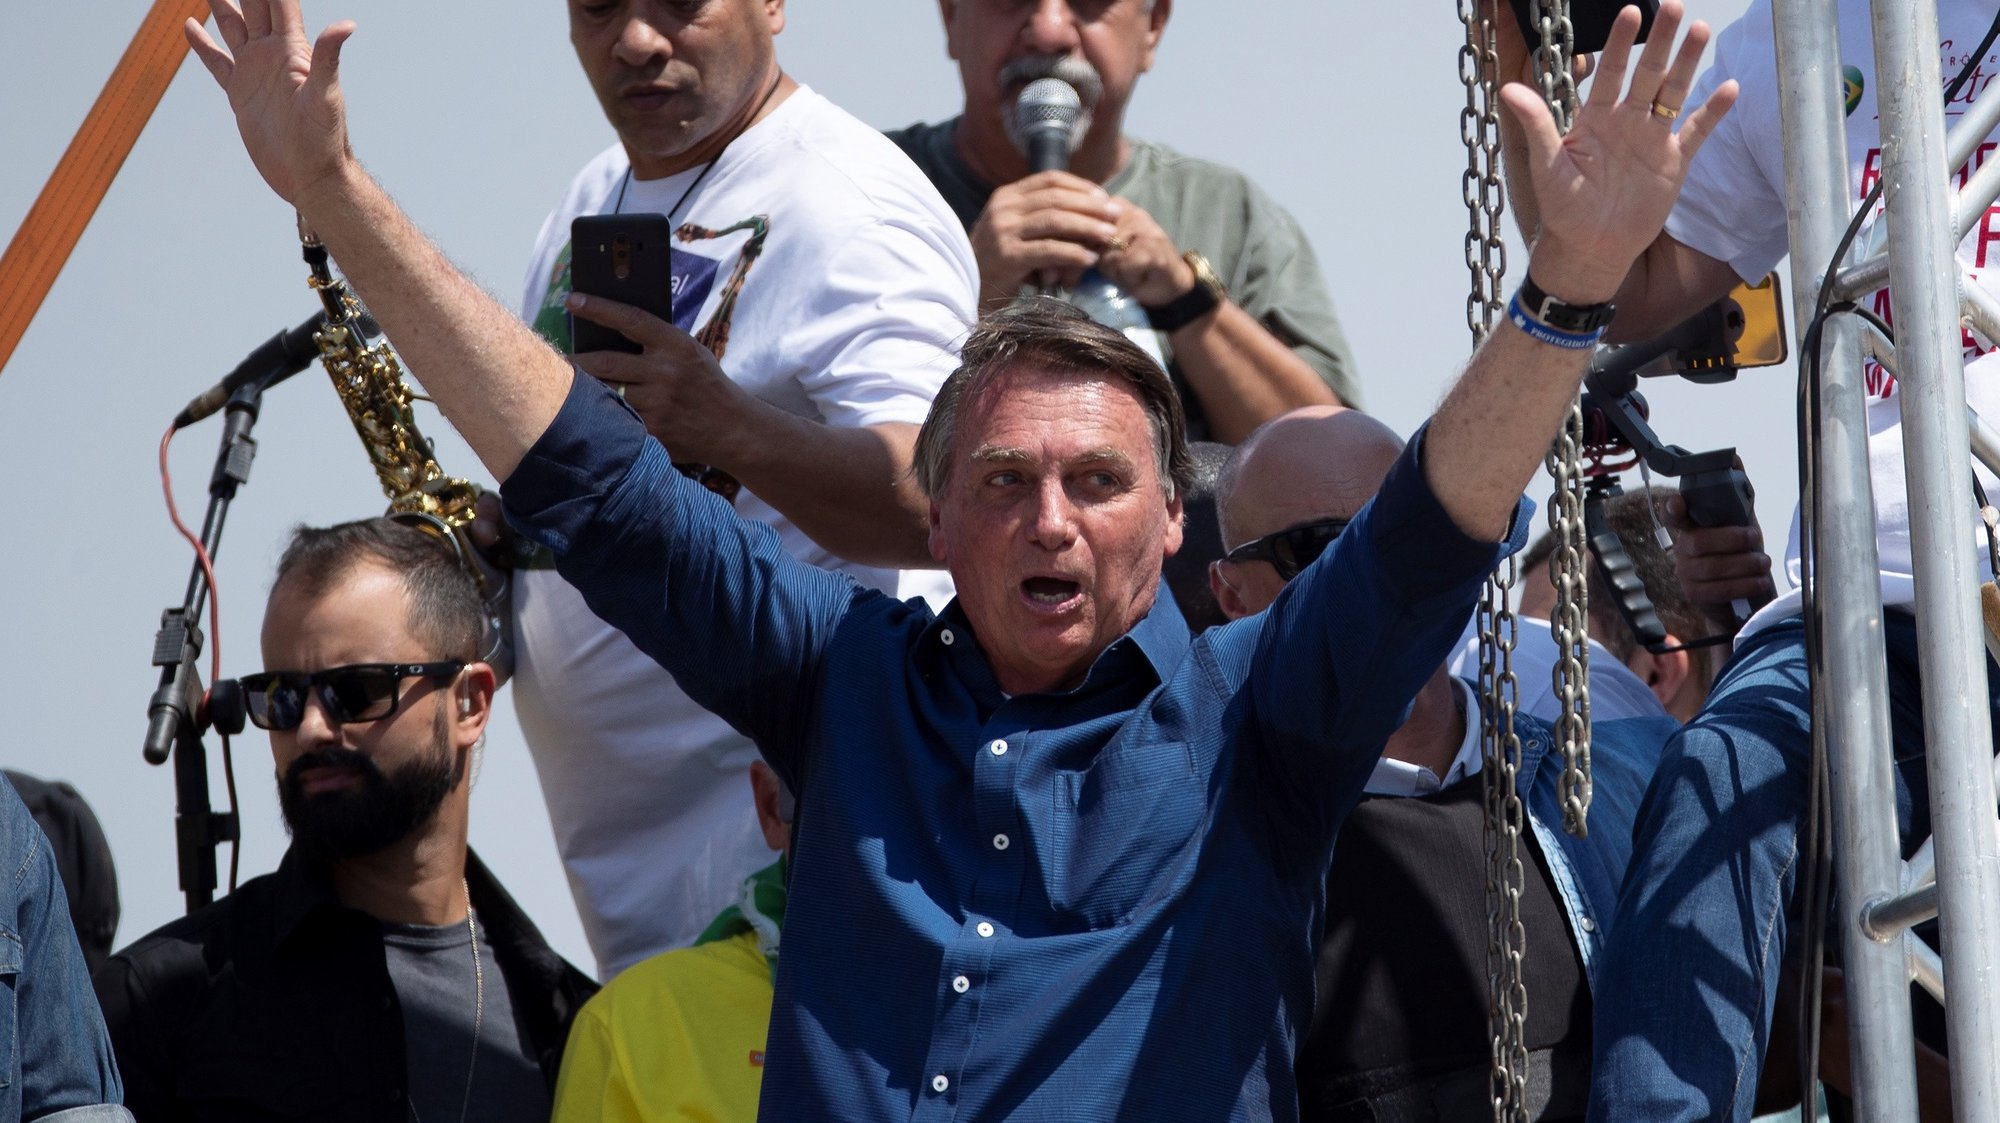 epa09453690 The President of Brazil Jair Bolsonaro greets his followers during an act of Government for the day of independence, in Brasilia, Brazil, 7 September 2021. In addition to the demonstrations called by the extreme right, opposition groups also take to the streets this 07 September, as Brazil celebrates the anniversary of its independence.  EPA/Joedson Alves